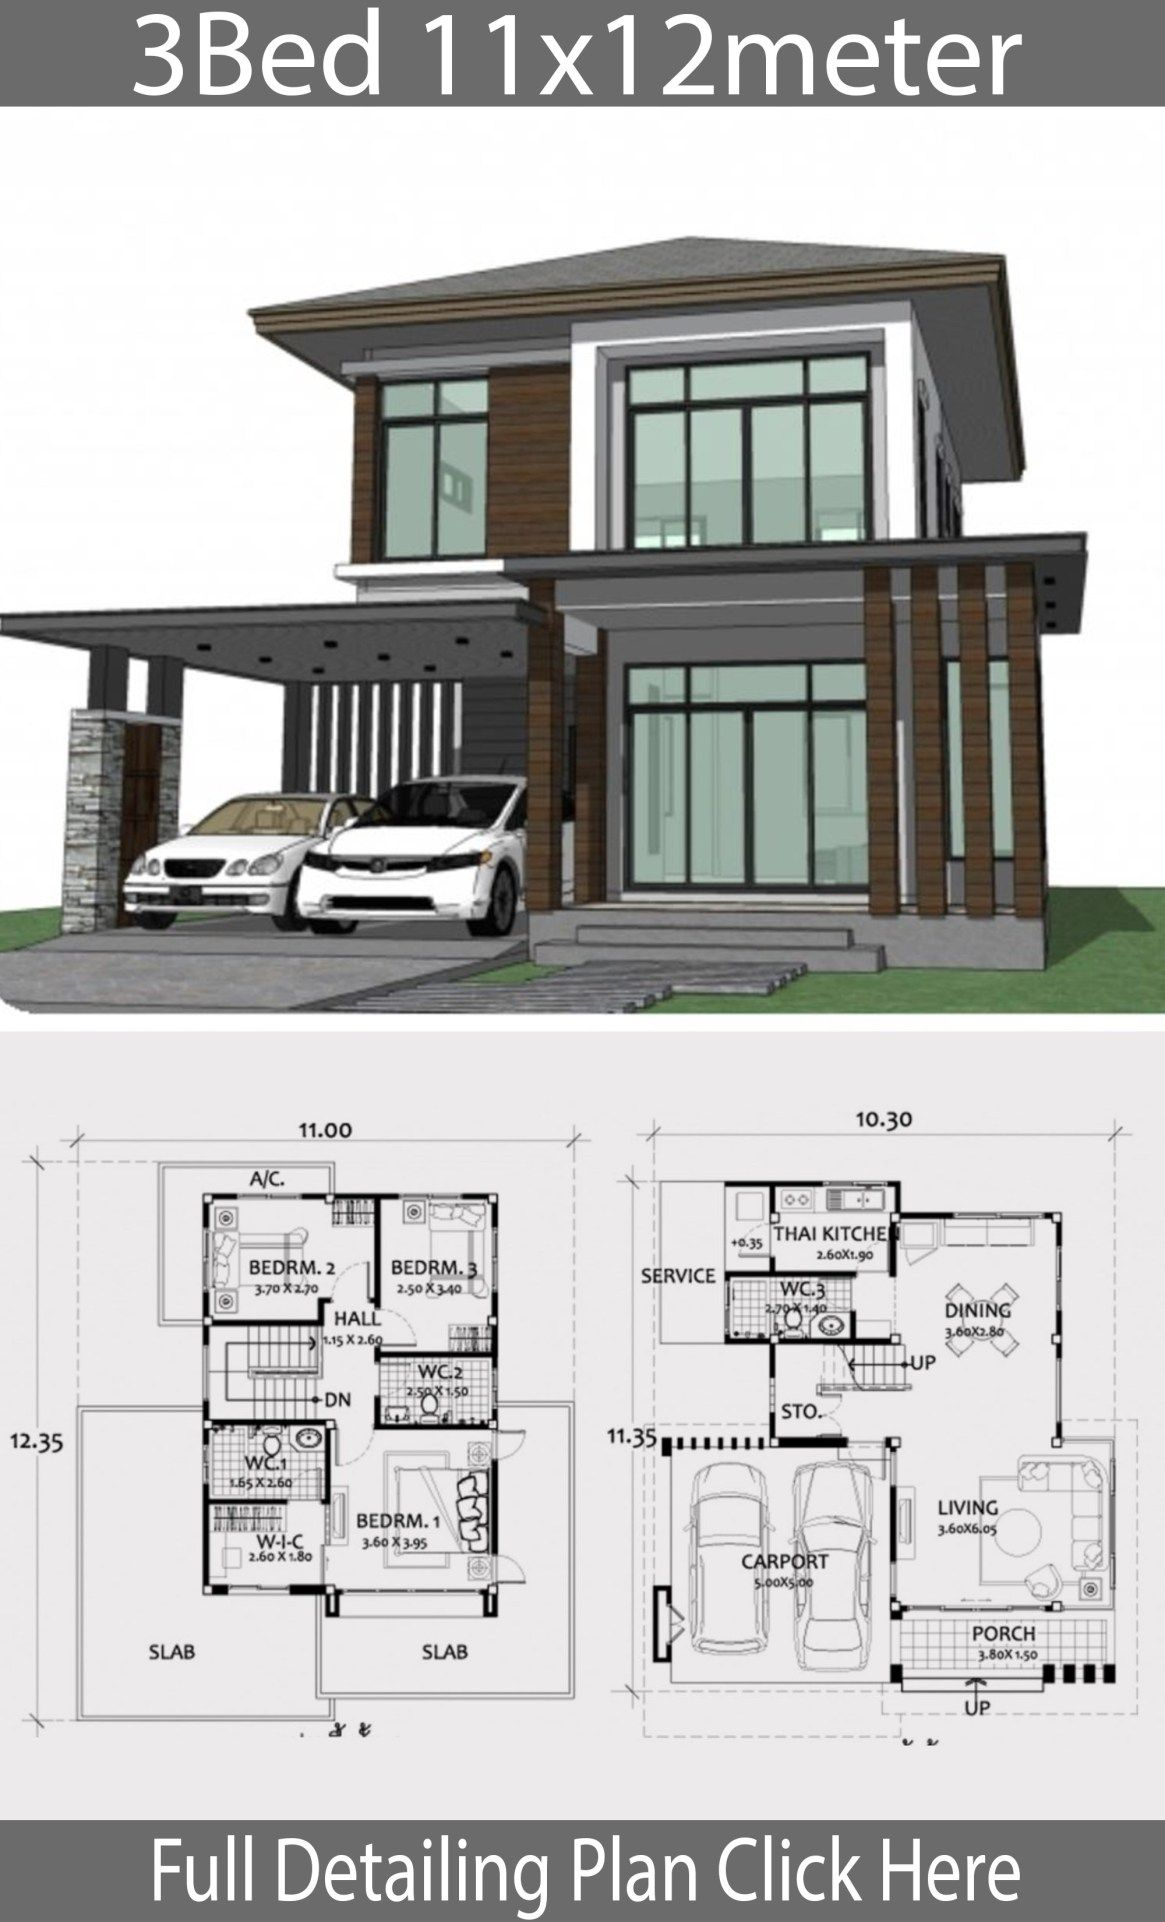 Home Design Plan 11x12m With 3 Bedrooms Home Design With Plansearch House Blueprints Home Design Plan Modern House Design